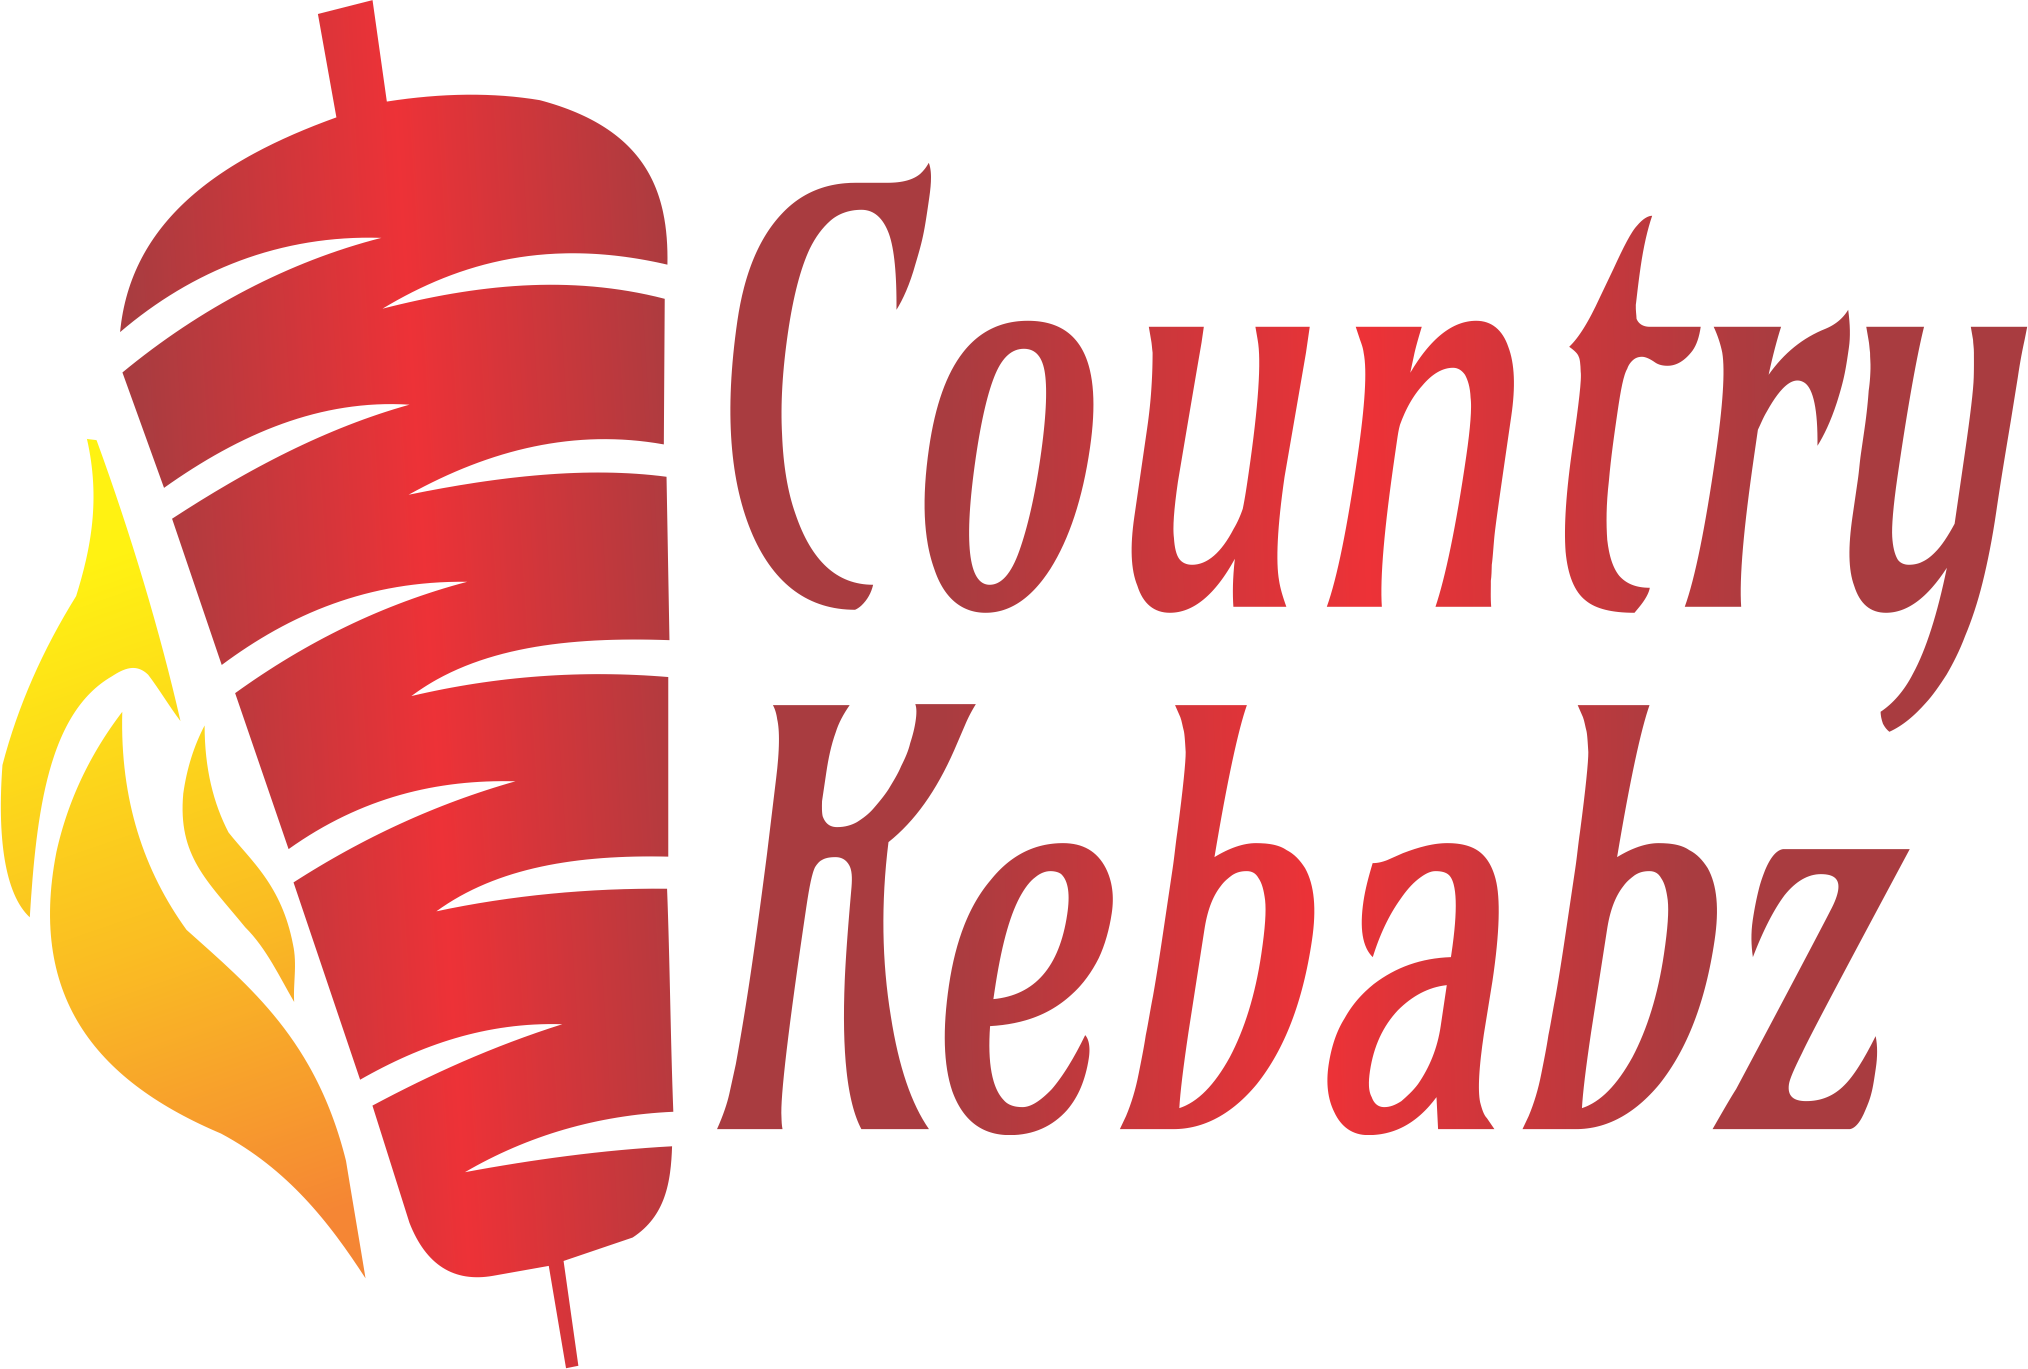 Country Kebabz